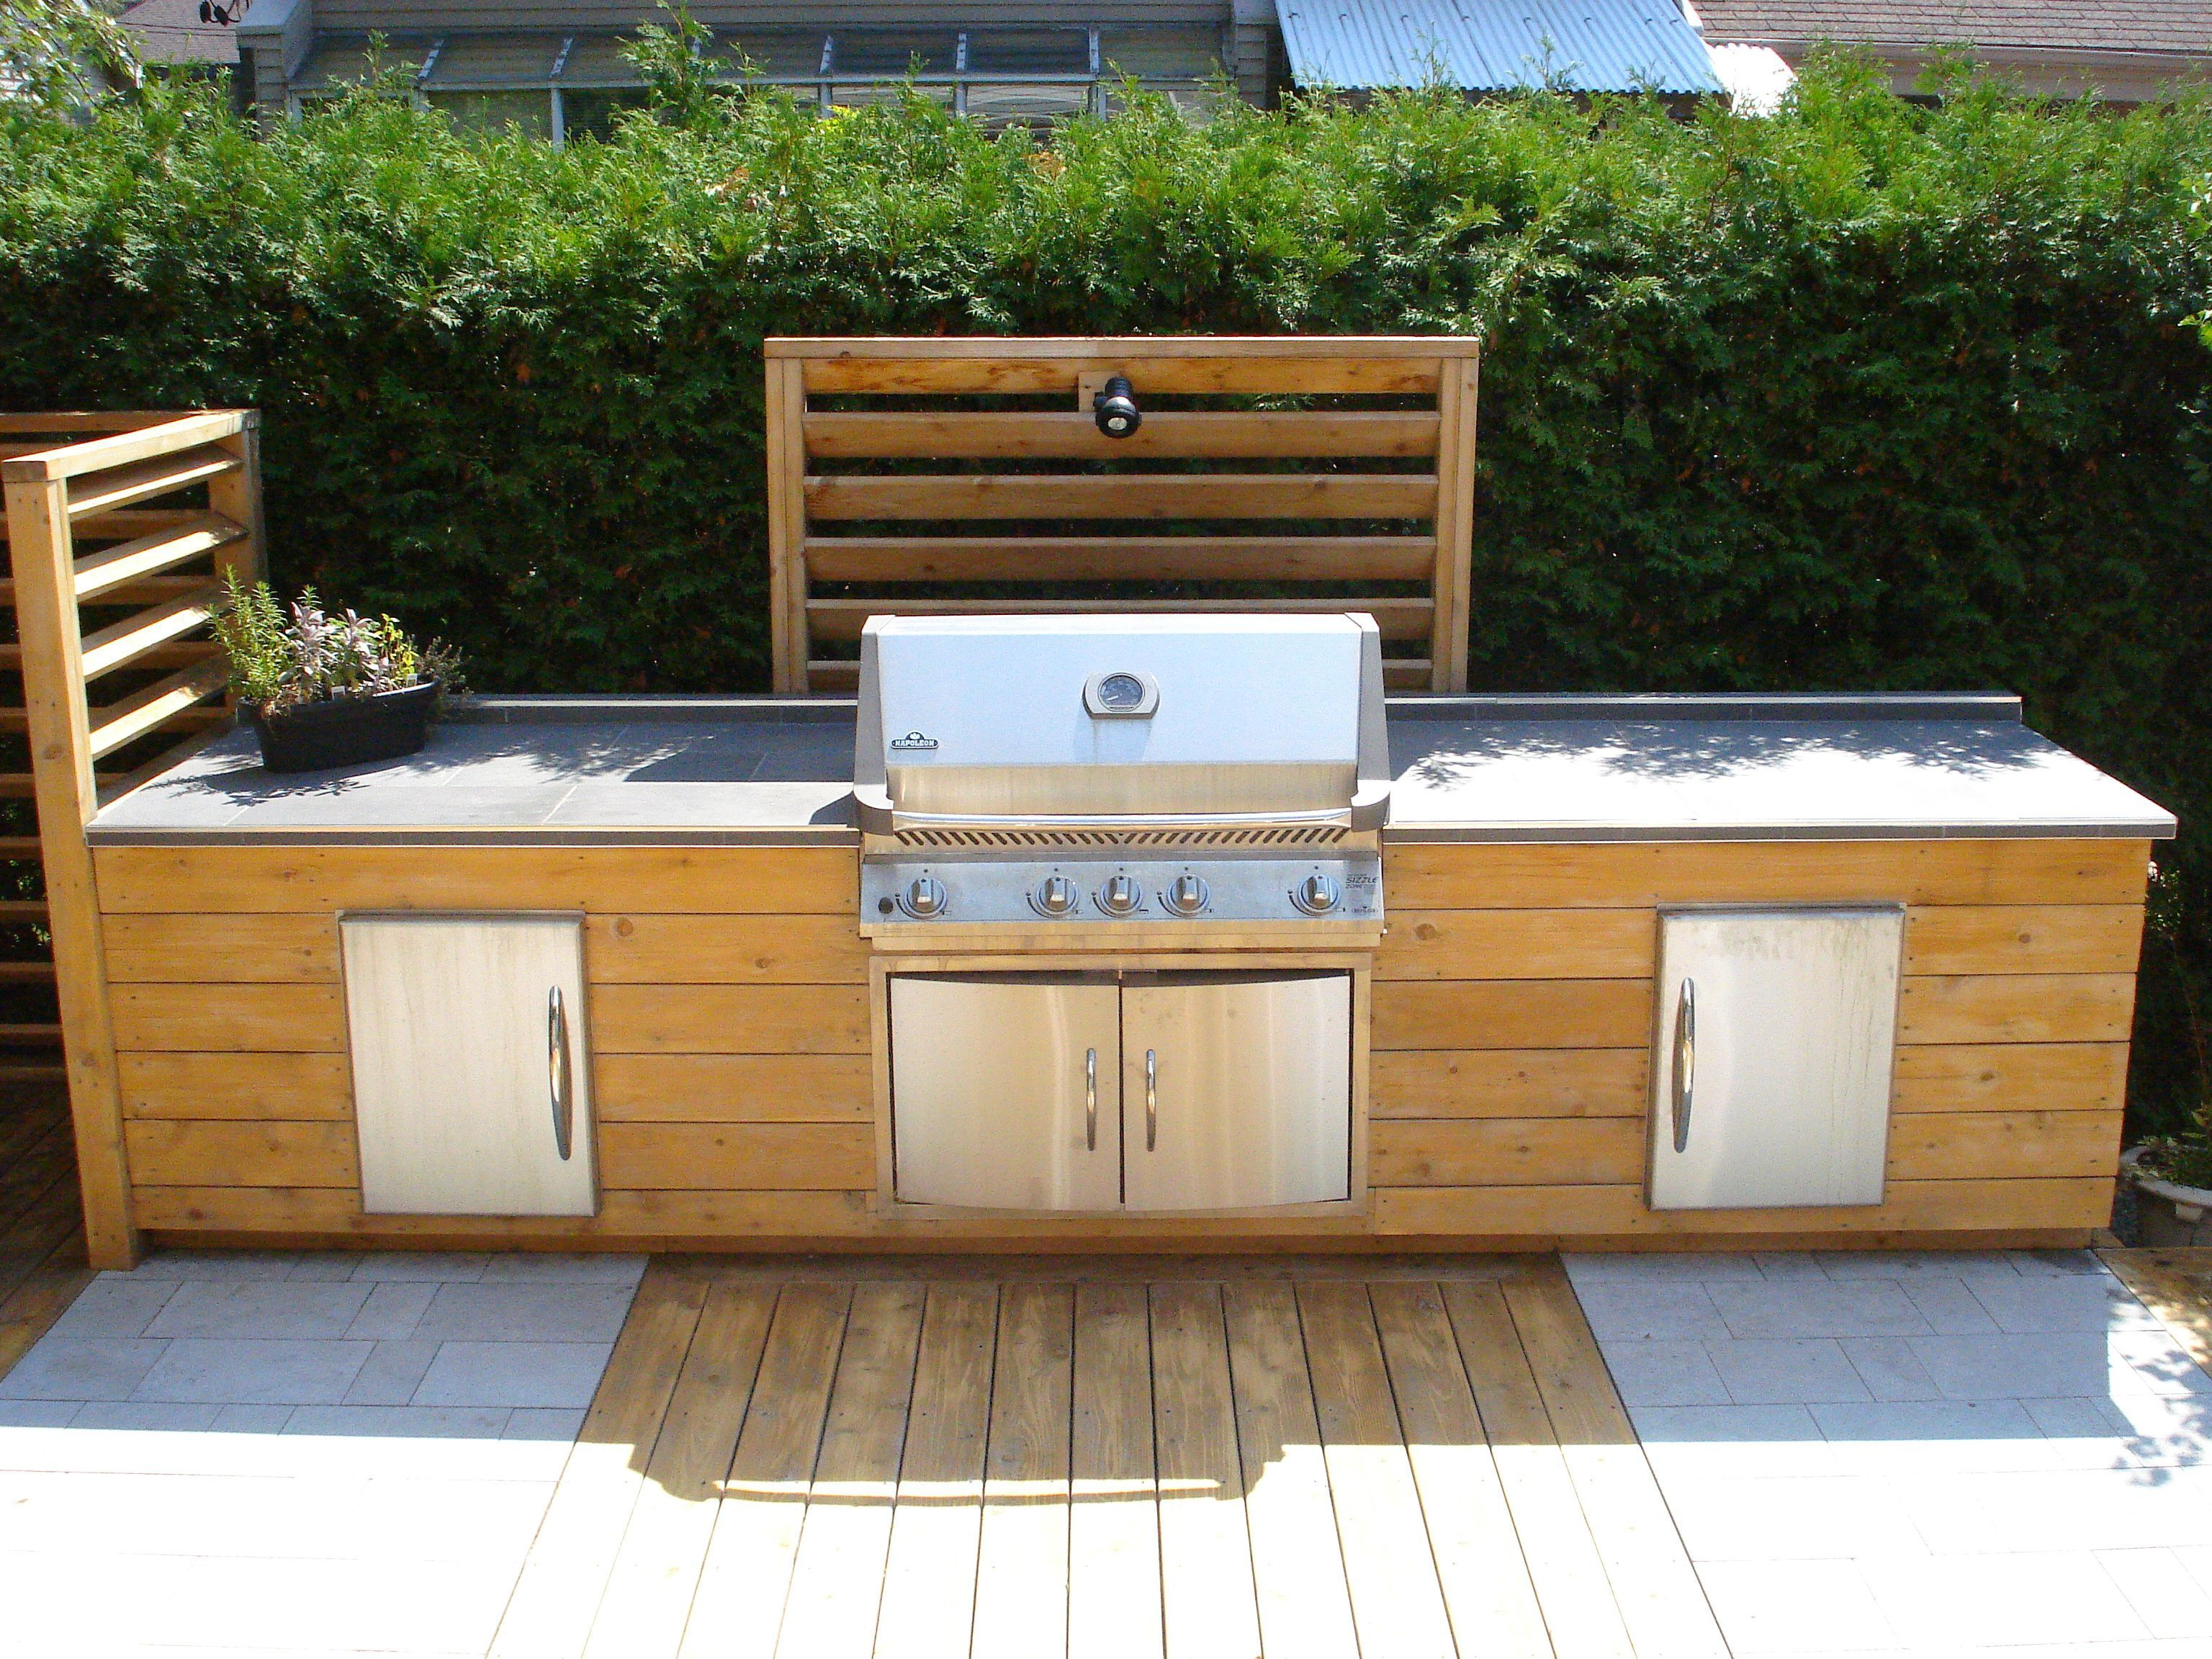 Pin By Eloise Houle On Terrasse Exterieure In 2020 Outdoor Bbq Kitchen Outdoor Kitchen Outdoor Kitchen Design